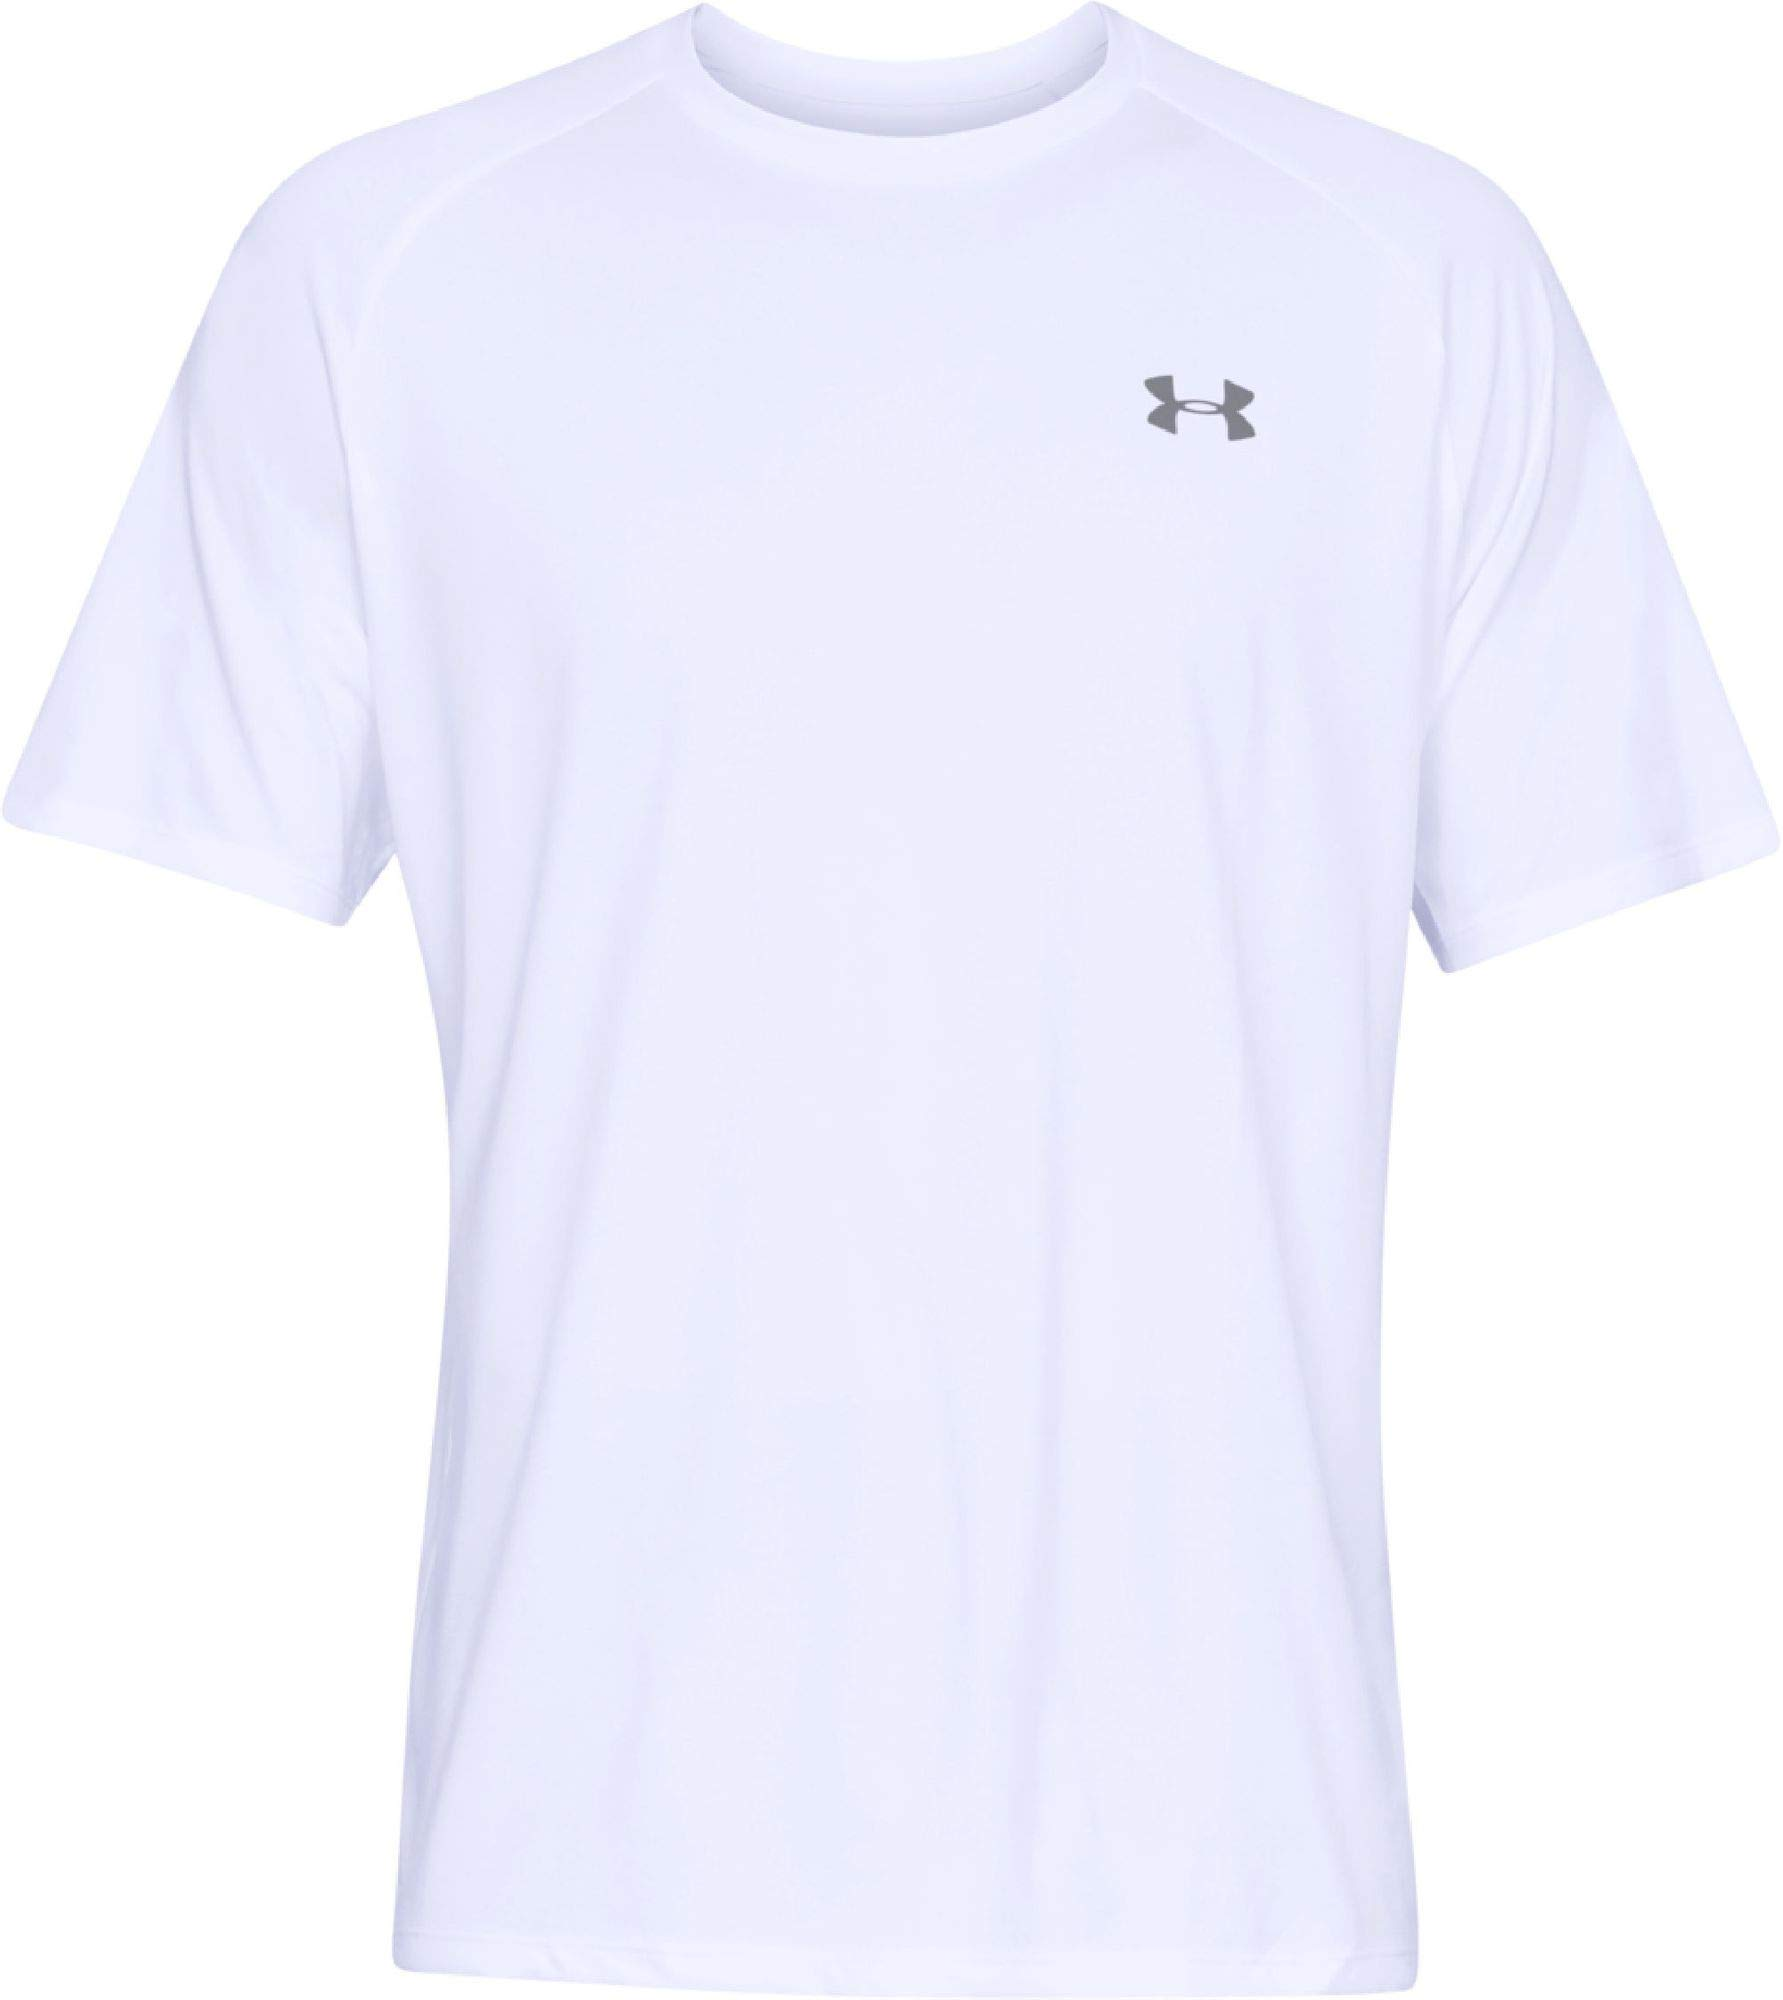 Under Armour Men's UA Tech Short Sleeve Tee 2.0, White, XS-R by Under Armour